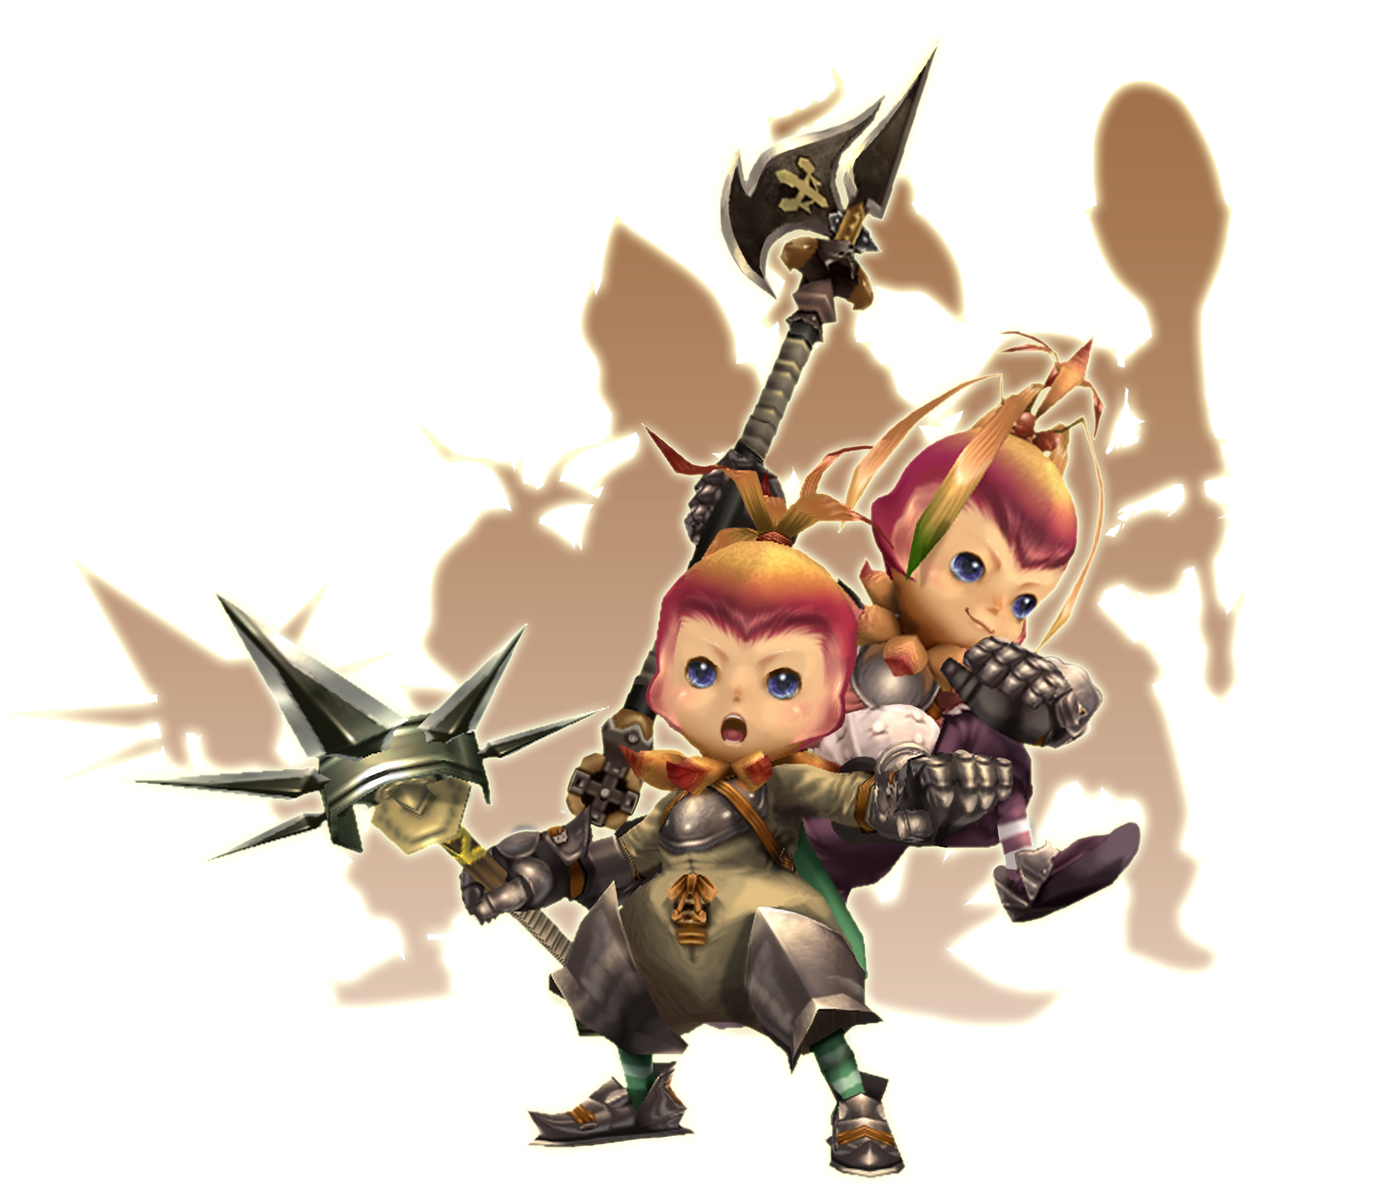 Also, these adorable characters are the tanky melee characters in the game. You really can't go wrong there.